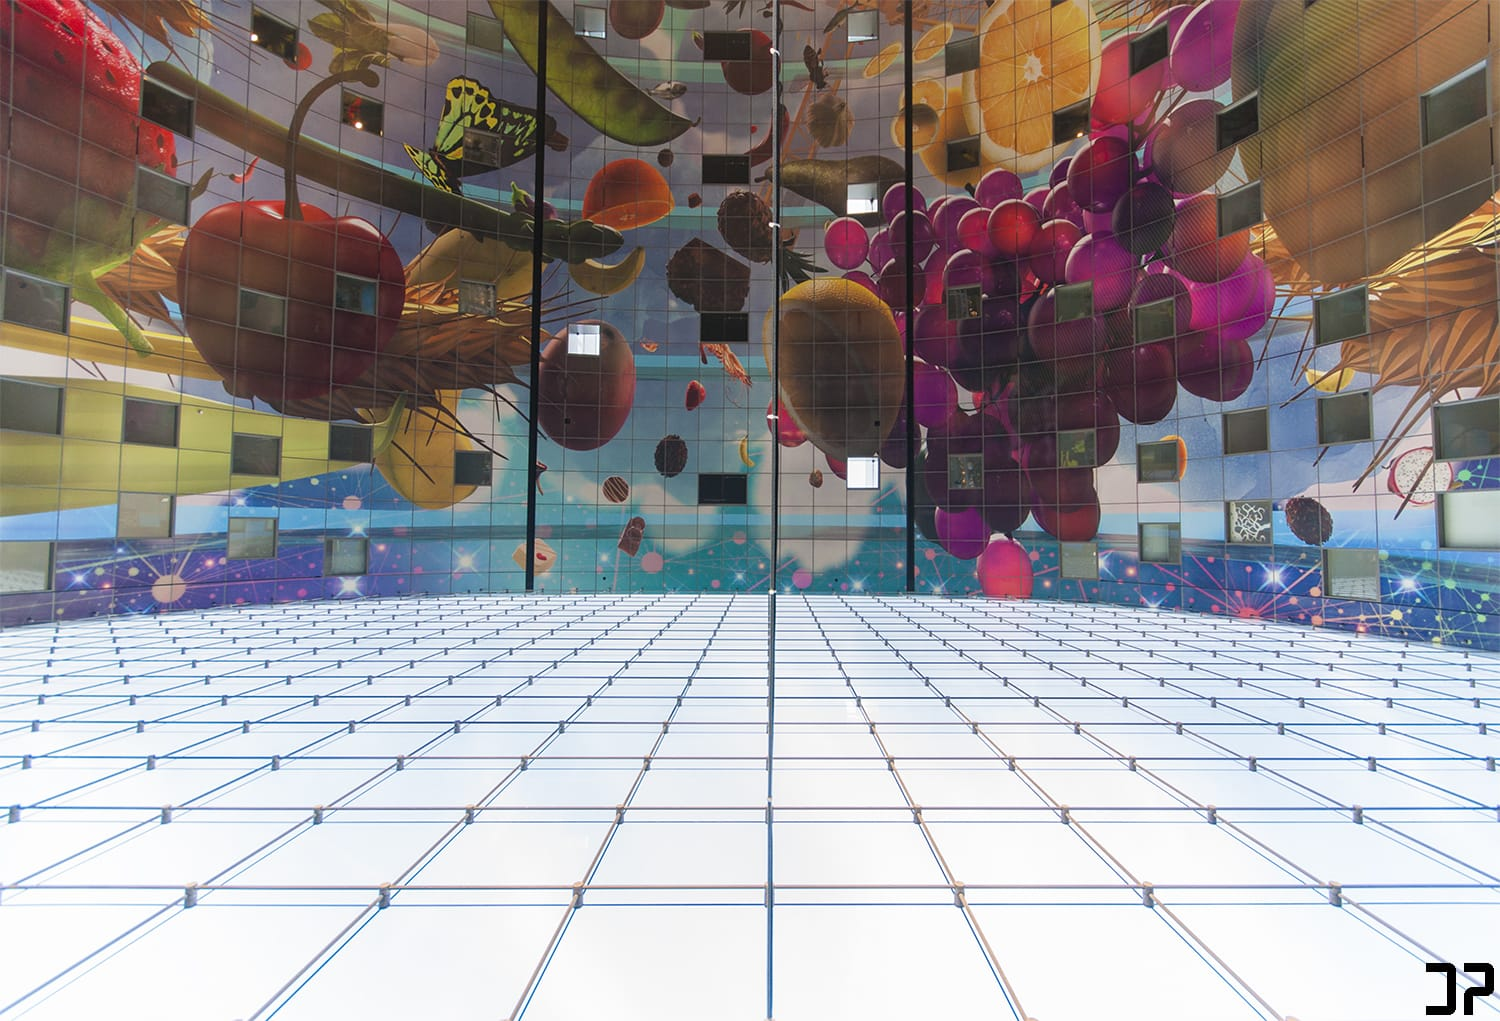 Markthal Rotterdam: Another perspective